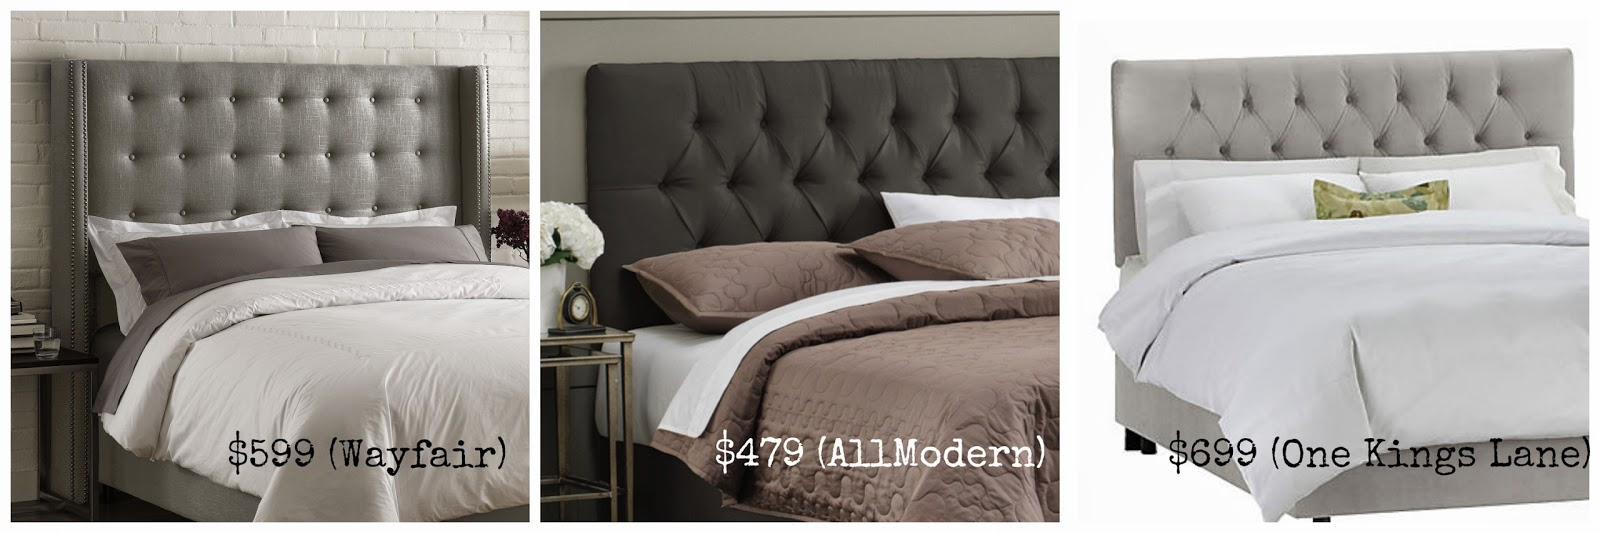 p button the wingback headboard tufted furniture home en premier full white twill nail skyline in queen